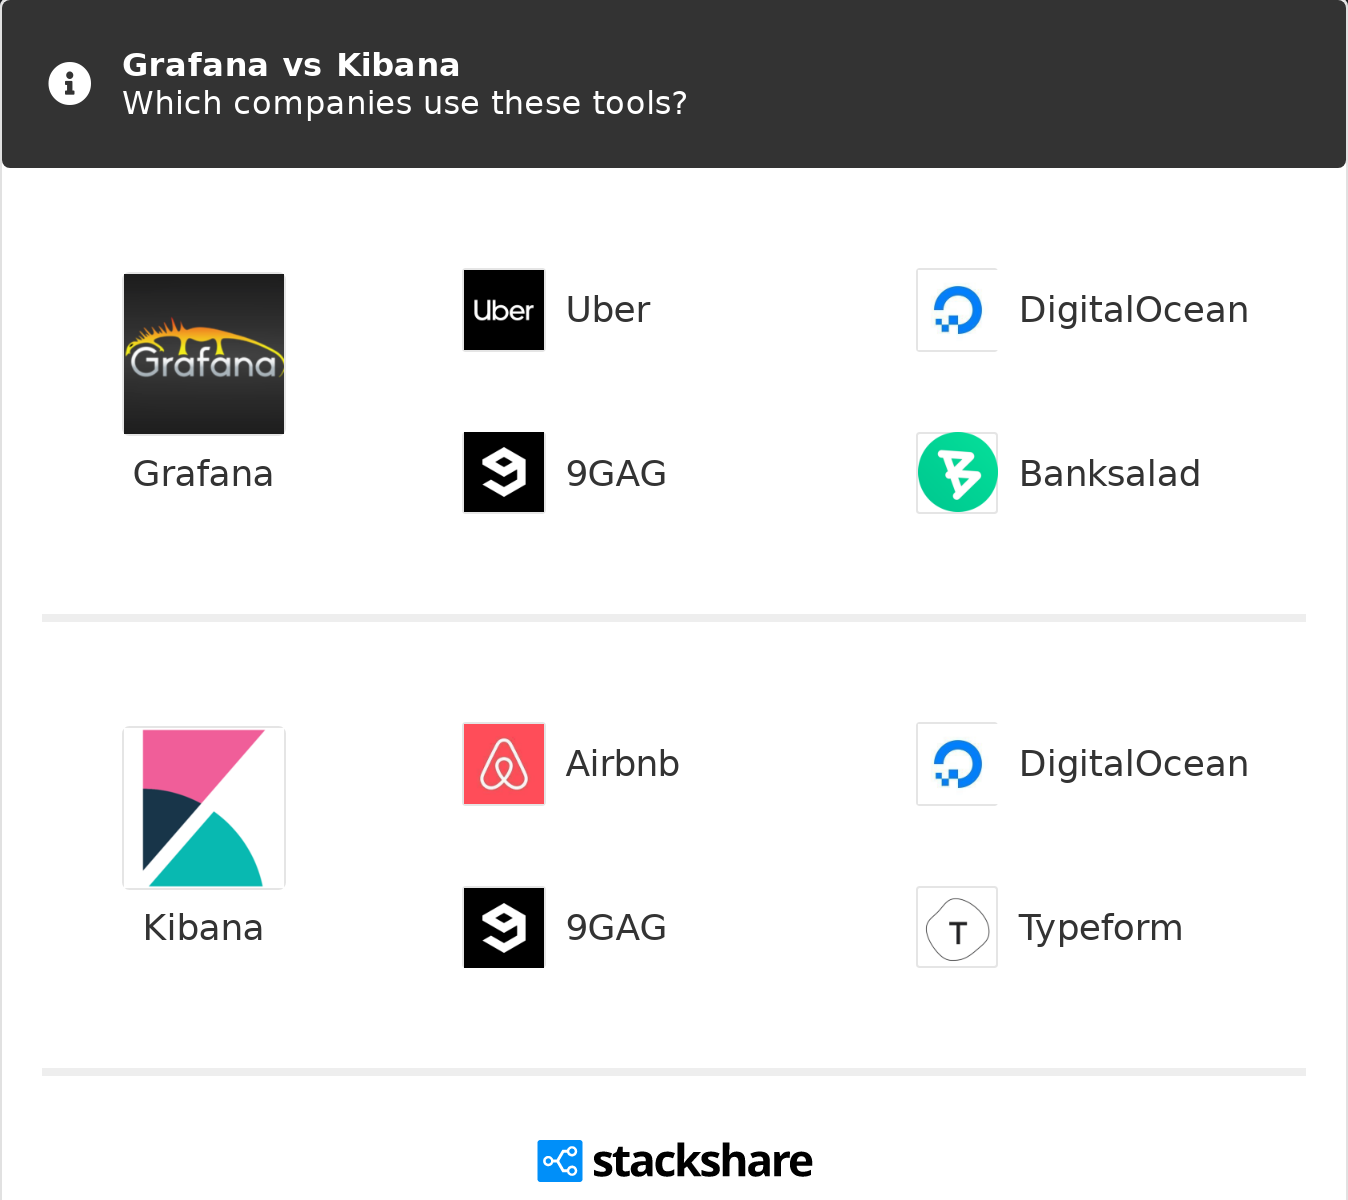 Grafana vs Kibana | What are the differences?